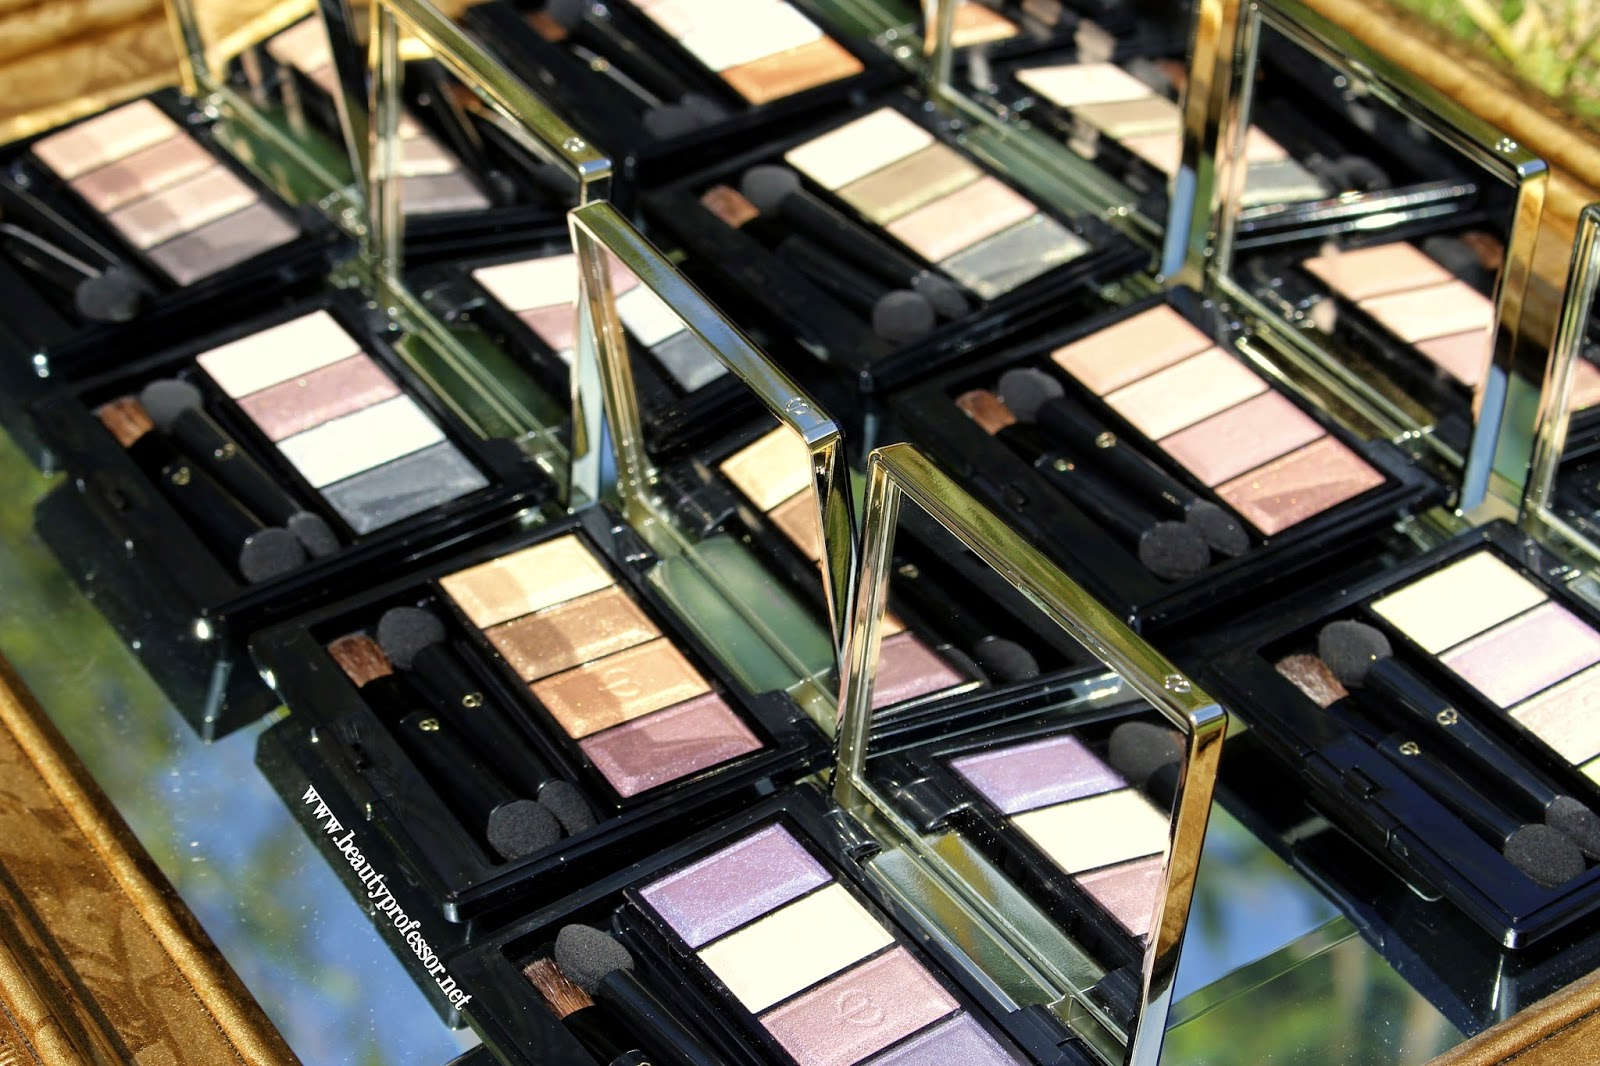 Cle de peau eye color quad swatches